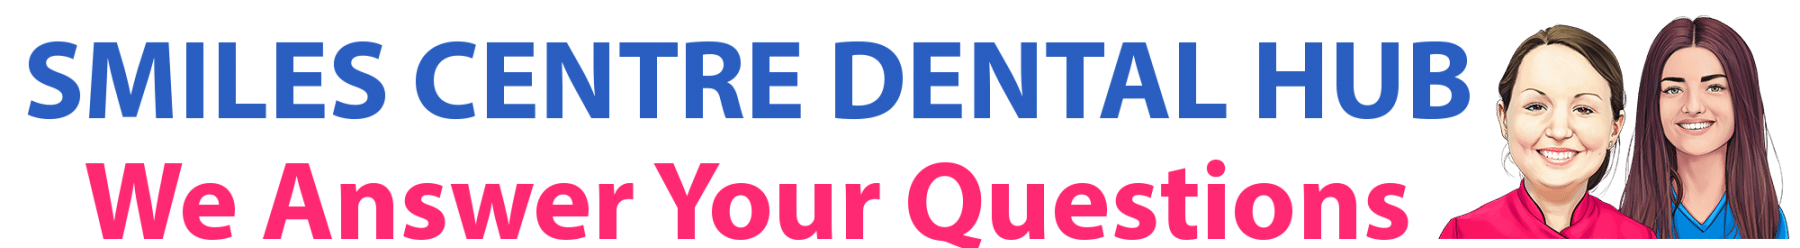 smiles centre swindon dental hub header png